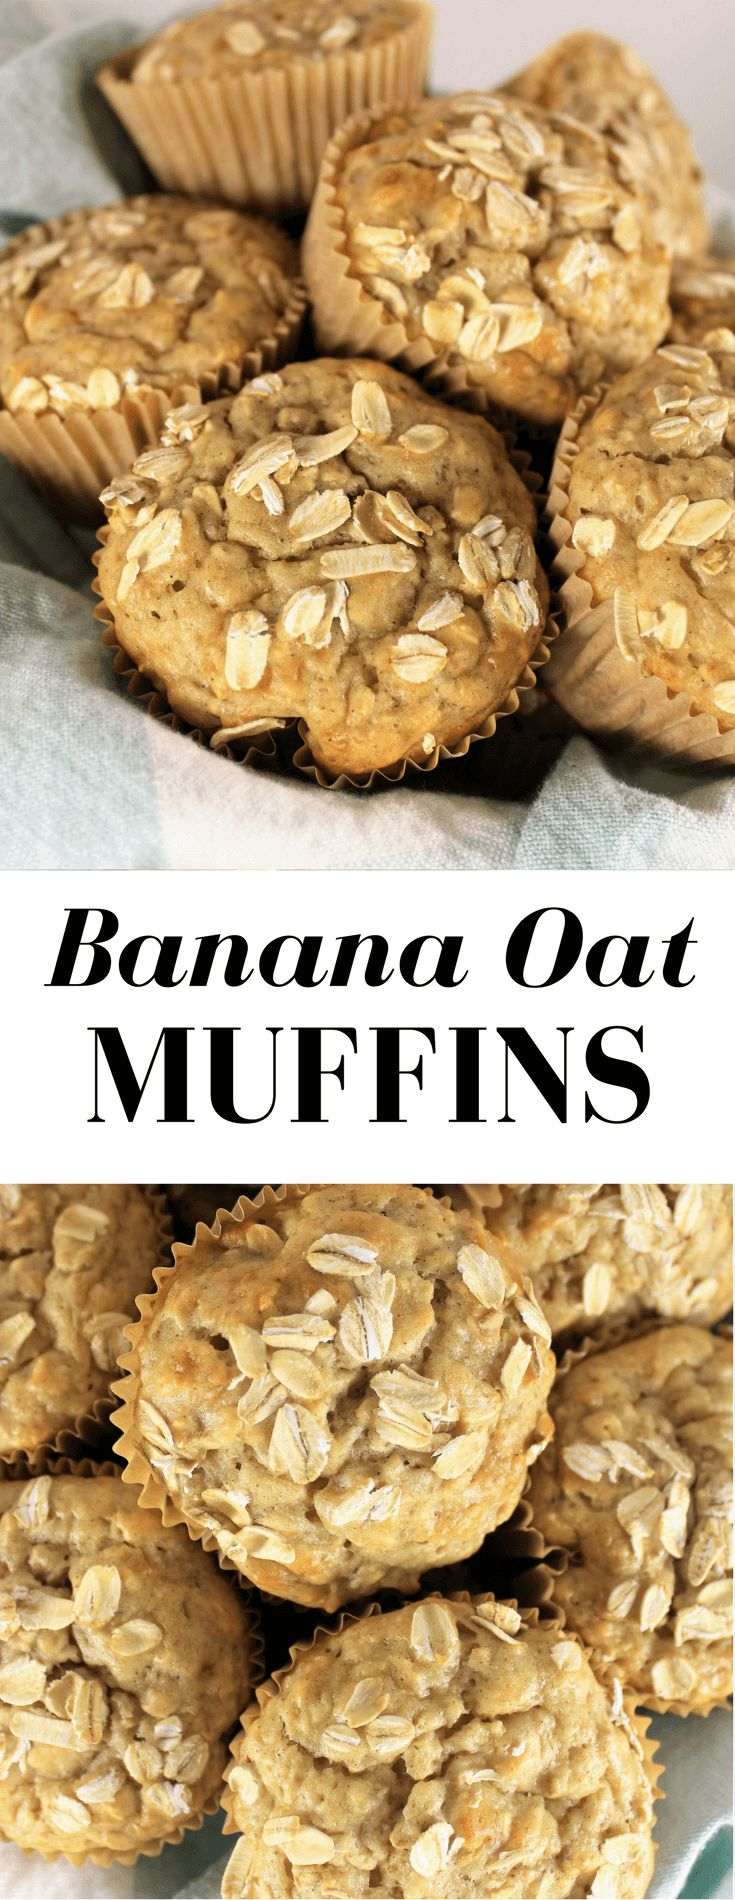 Banana Oat Muffins. Verdict: only had one banana so added some buttermilk and used less b sugar. Yum! Good texture.